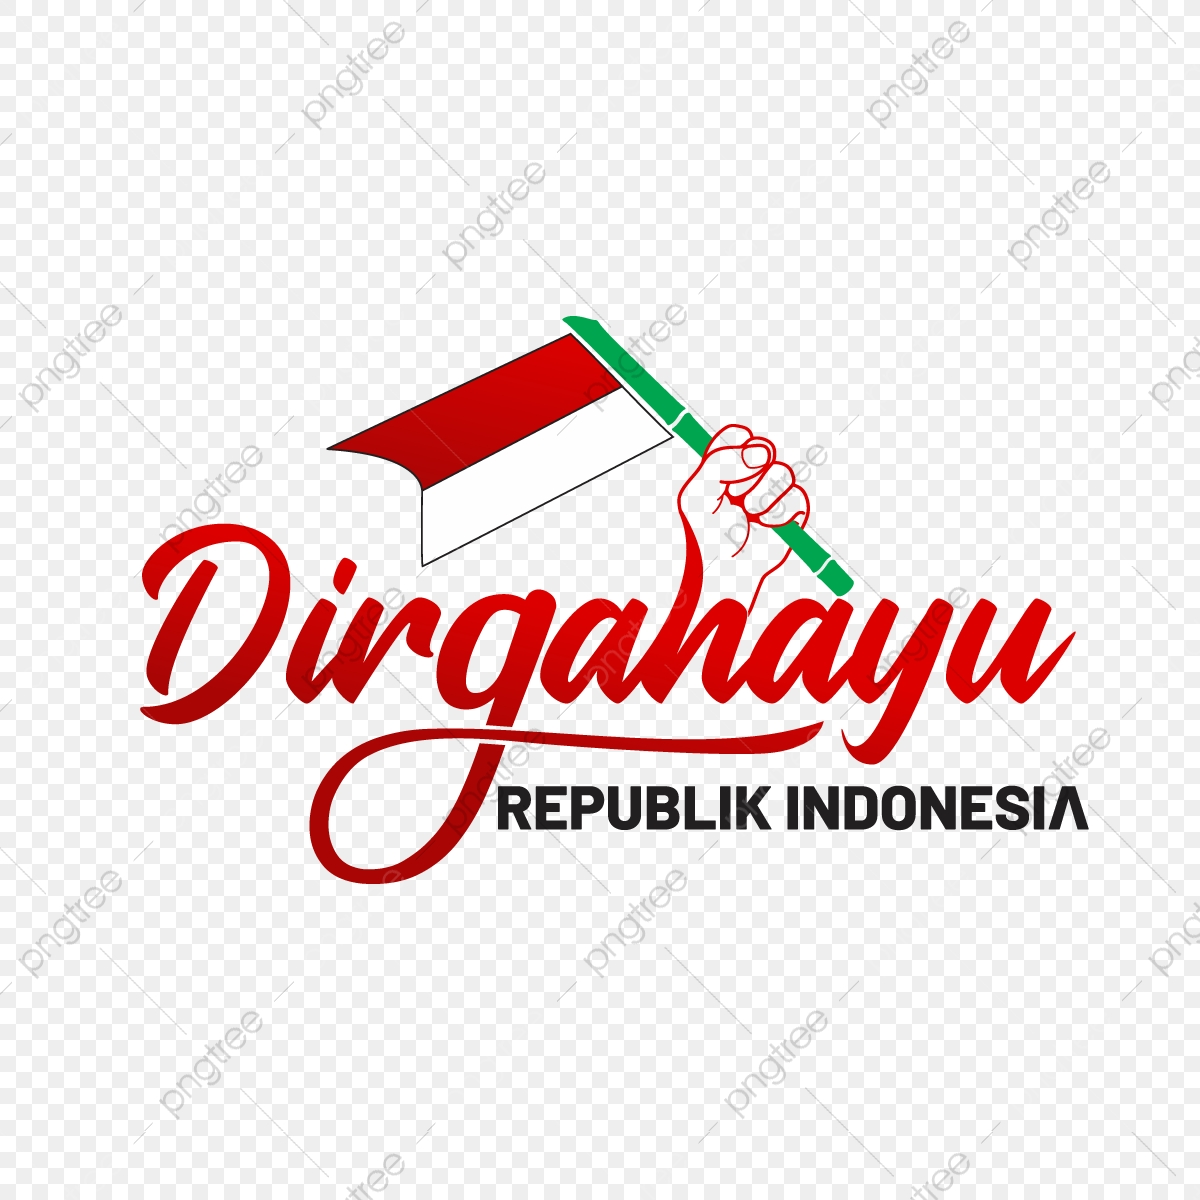 freedom png images vector and psd files free download on pngtree https pngtree com freepng lettering of dirgahayu republik indonesia with flag freedom 5364014 html